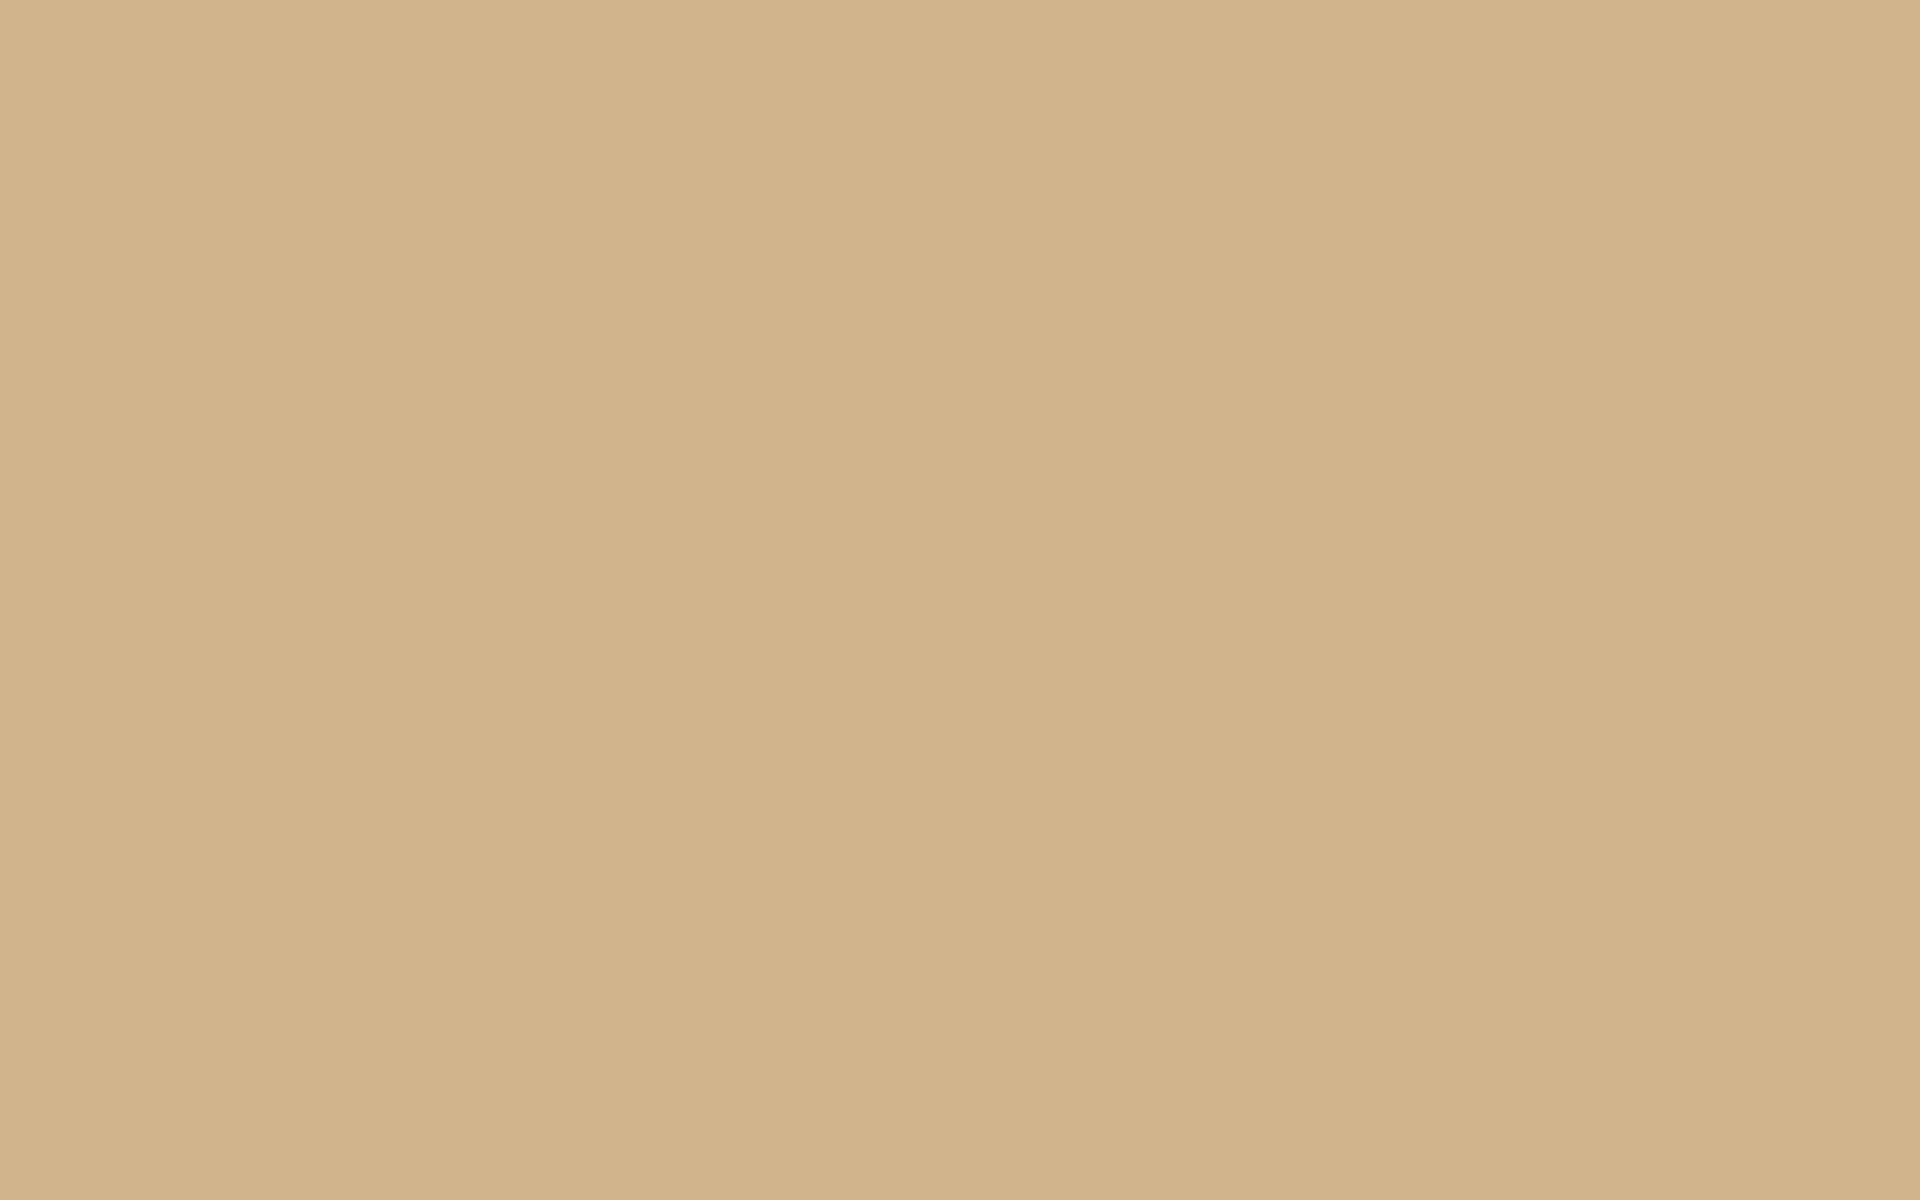 1920x1200 Tan Solid Color Background